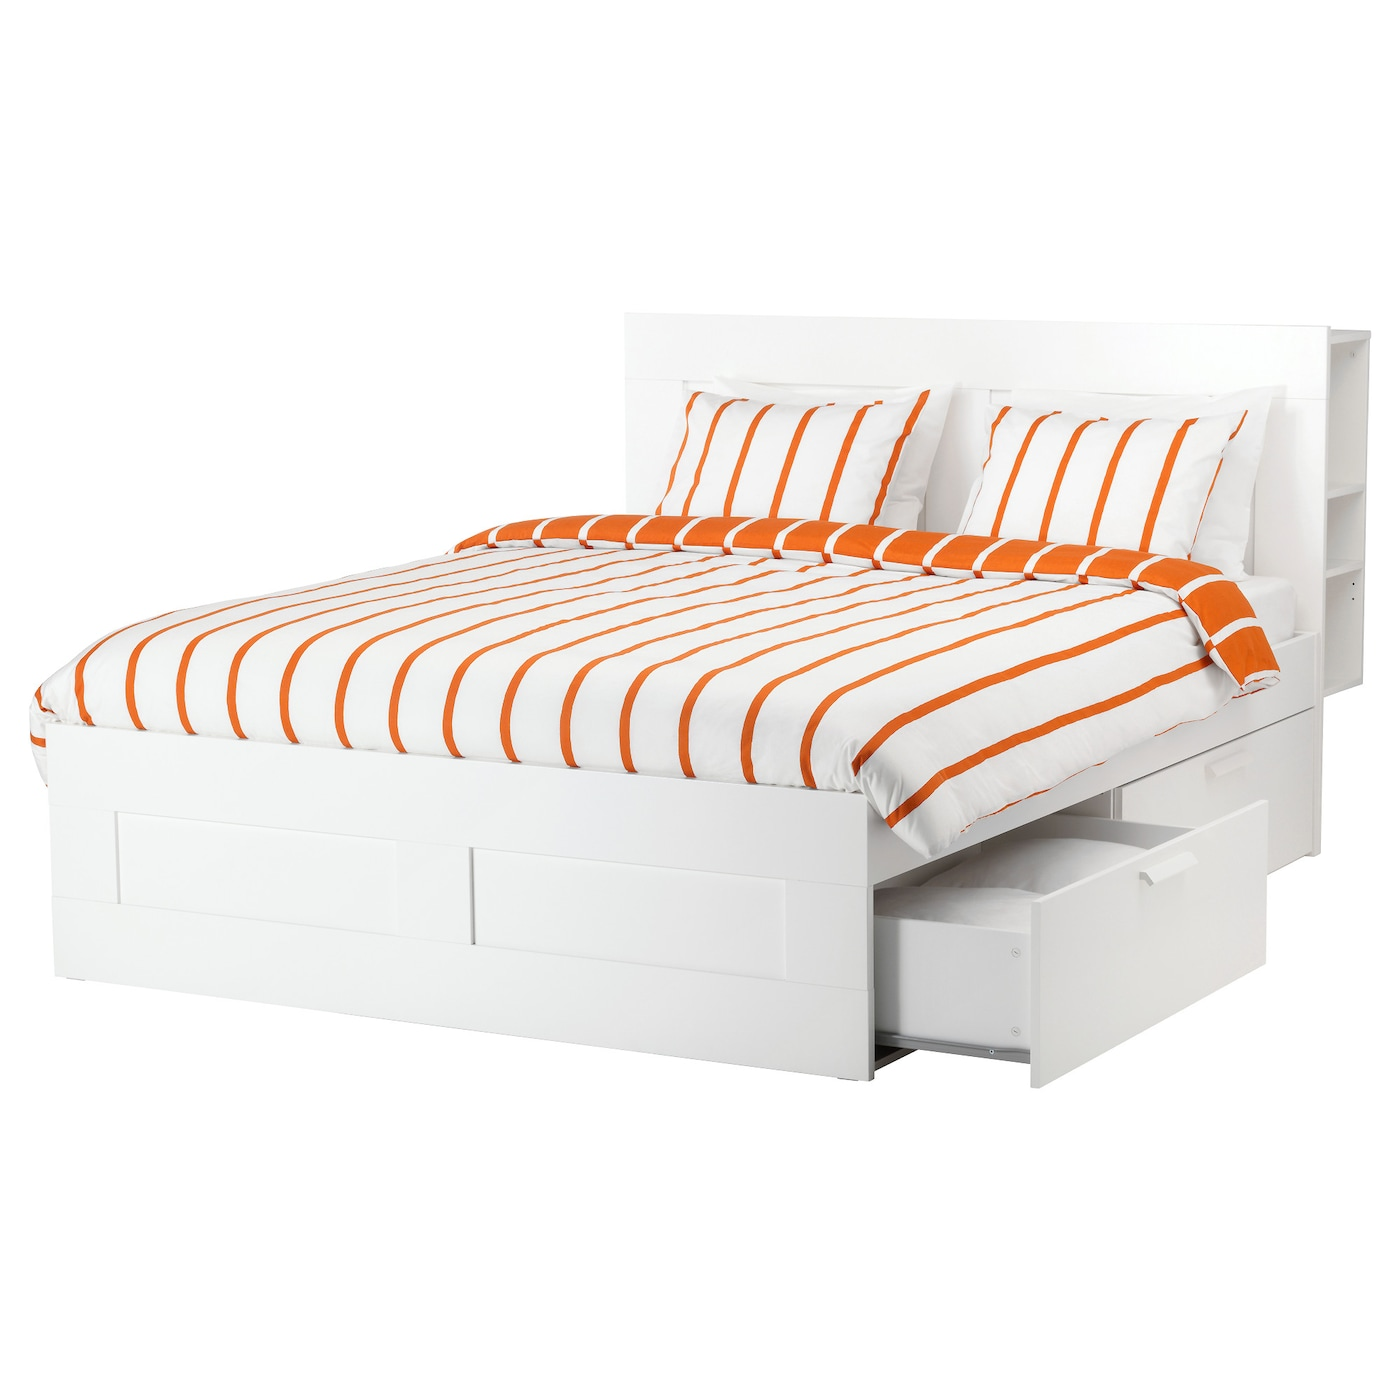 BRIMNES Bed frame w storage and headboard White luröy Standard King IKEA